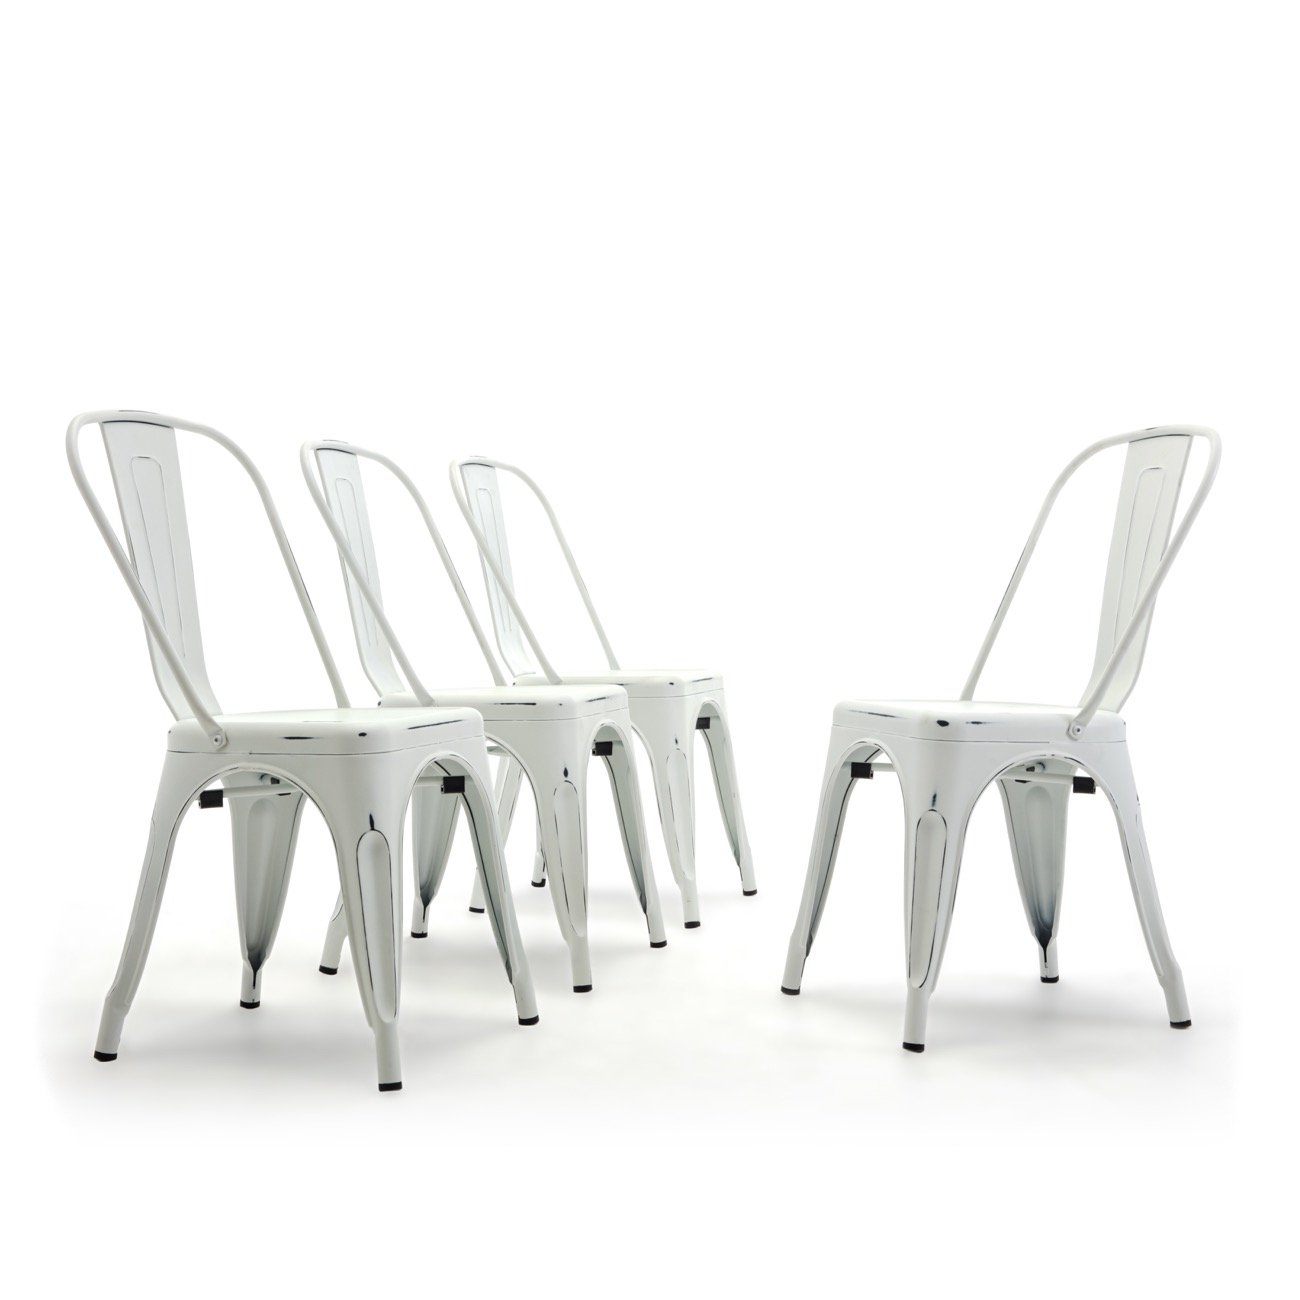 Antique White Dining Chairs Details About Set Of 4 Metal Bistro Cafe Modern Style Dining Chairs Stackable Antique White